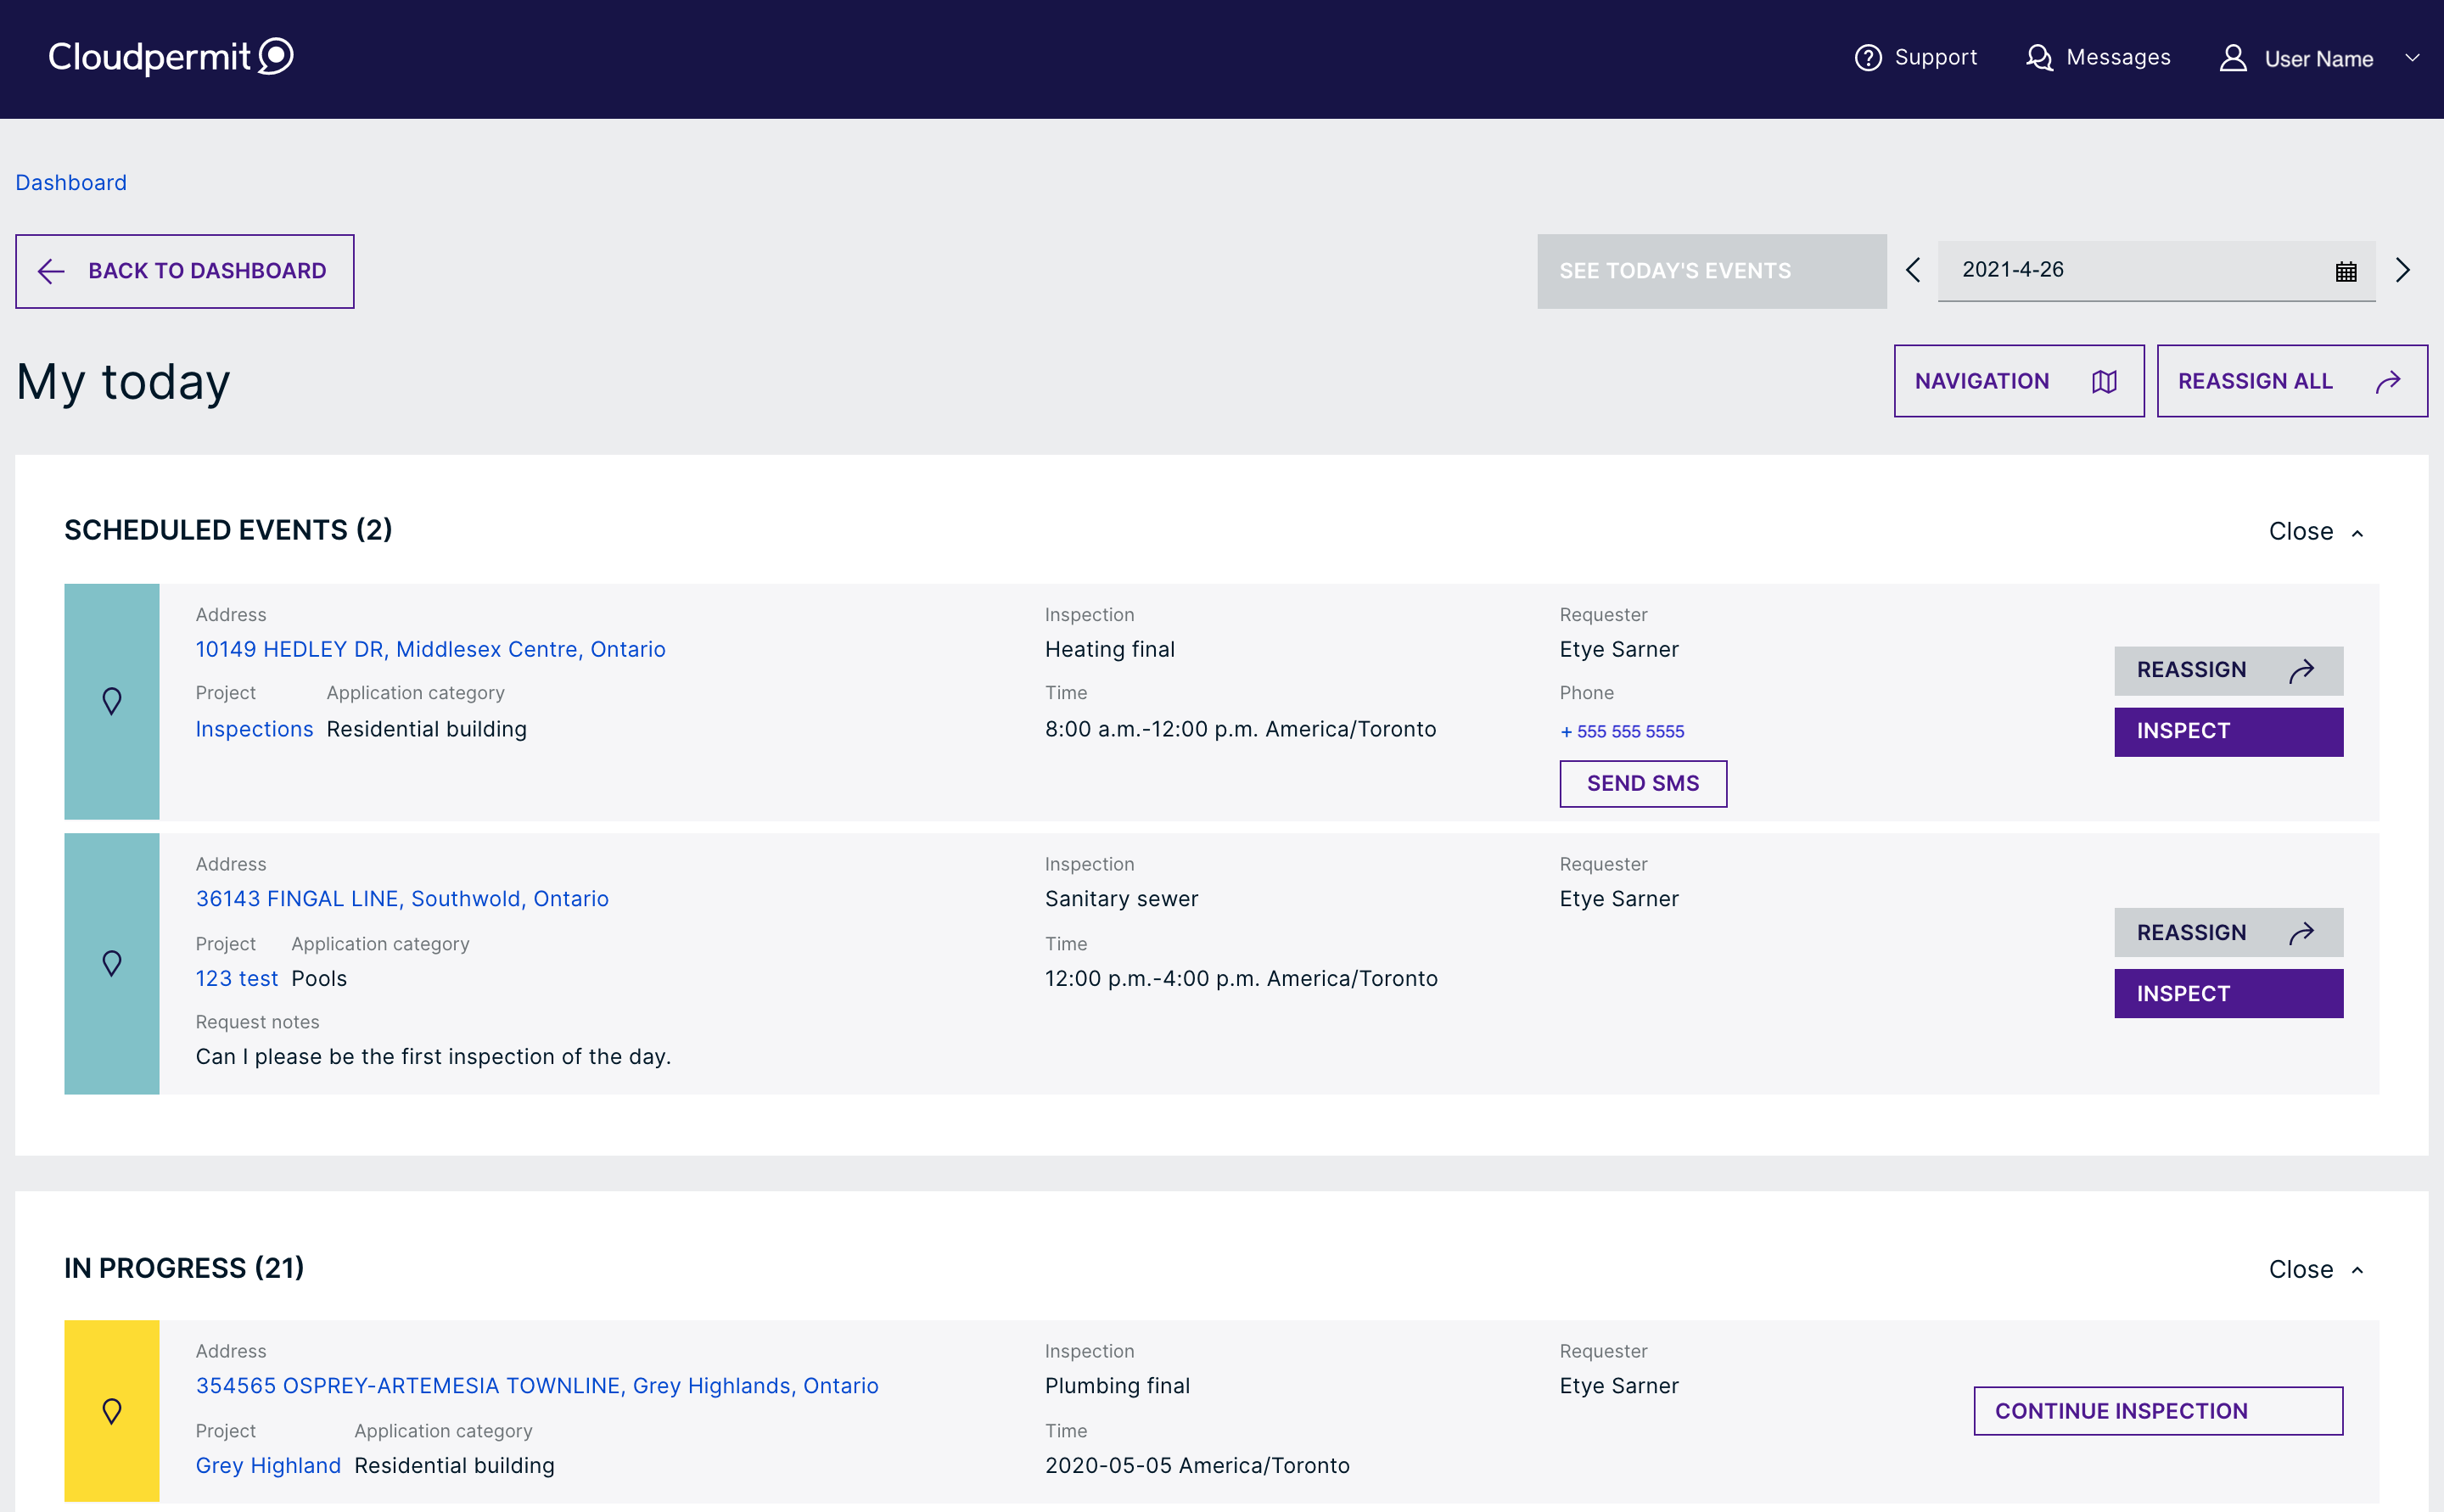 View of scheduled events for inspector in the Cloudpermit software.